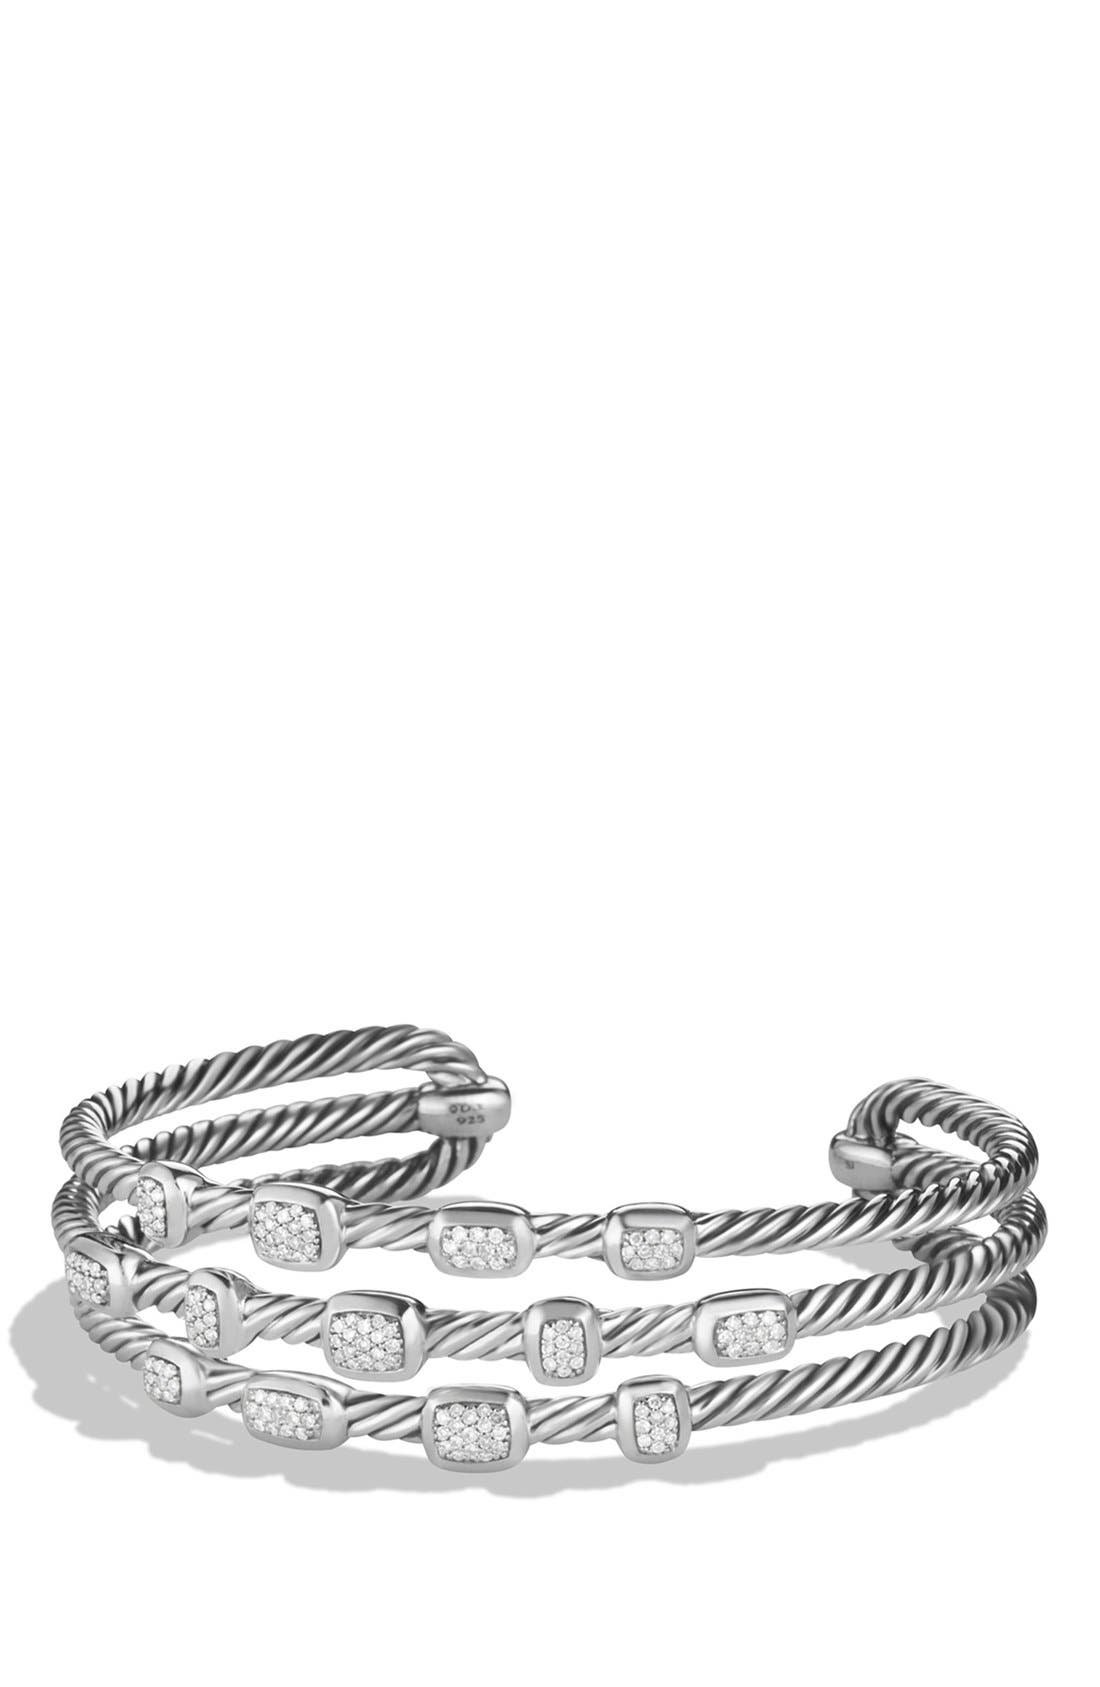 David Yurman 'Confetti' Narrow Cuff Bracelet with Diamond